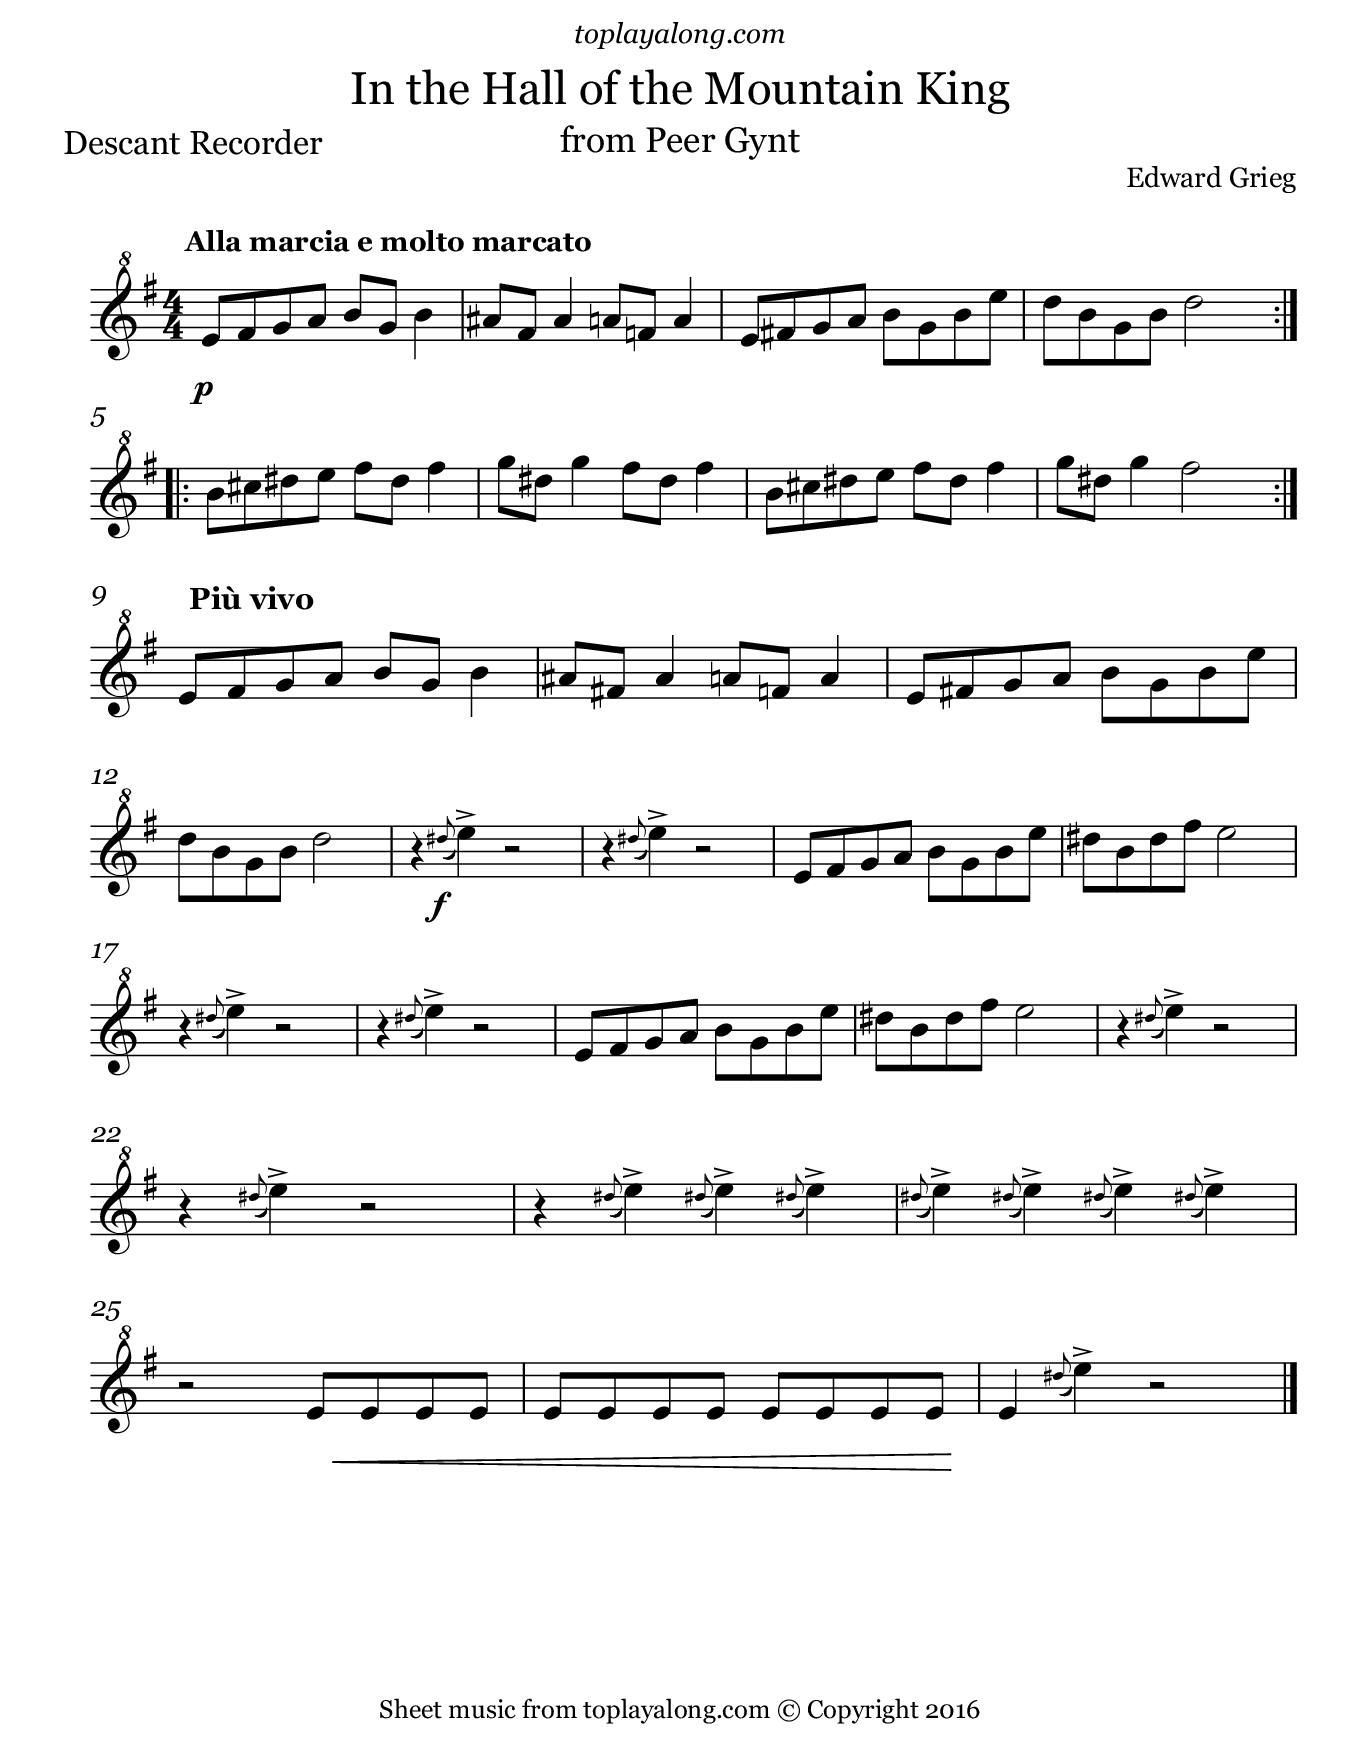 In the Hall of the Mountain King by Grieg. Sheet music for Recorder, page 1.